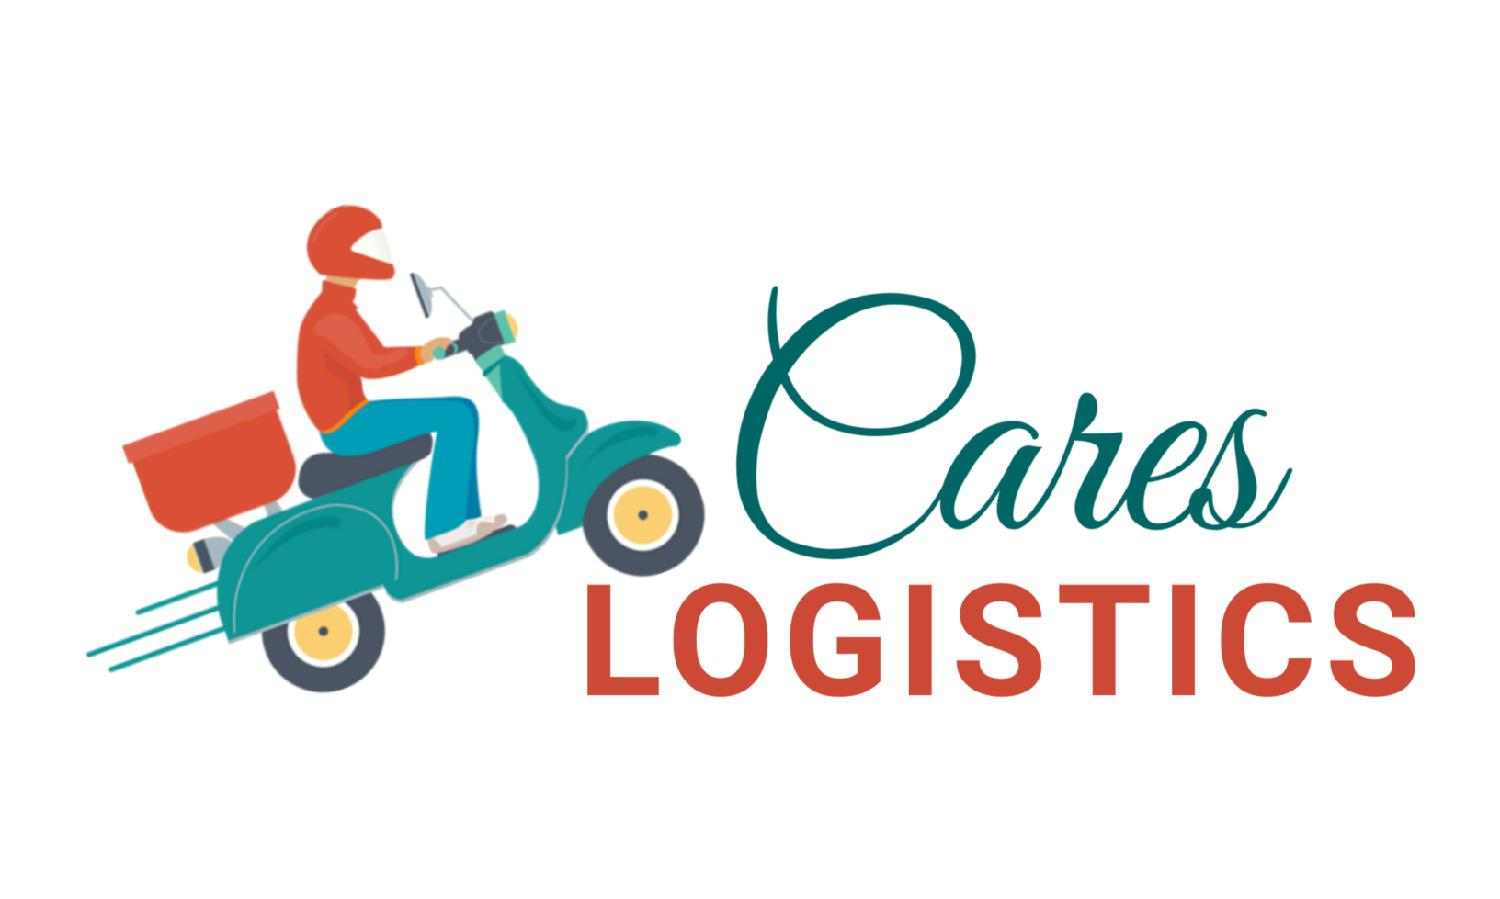 Dispatch Riders, Delivery Service, Home Deliveries